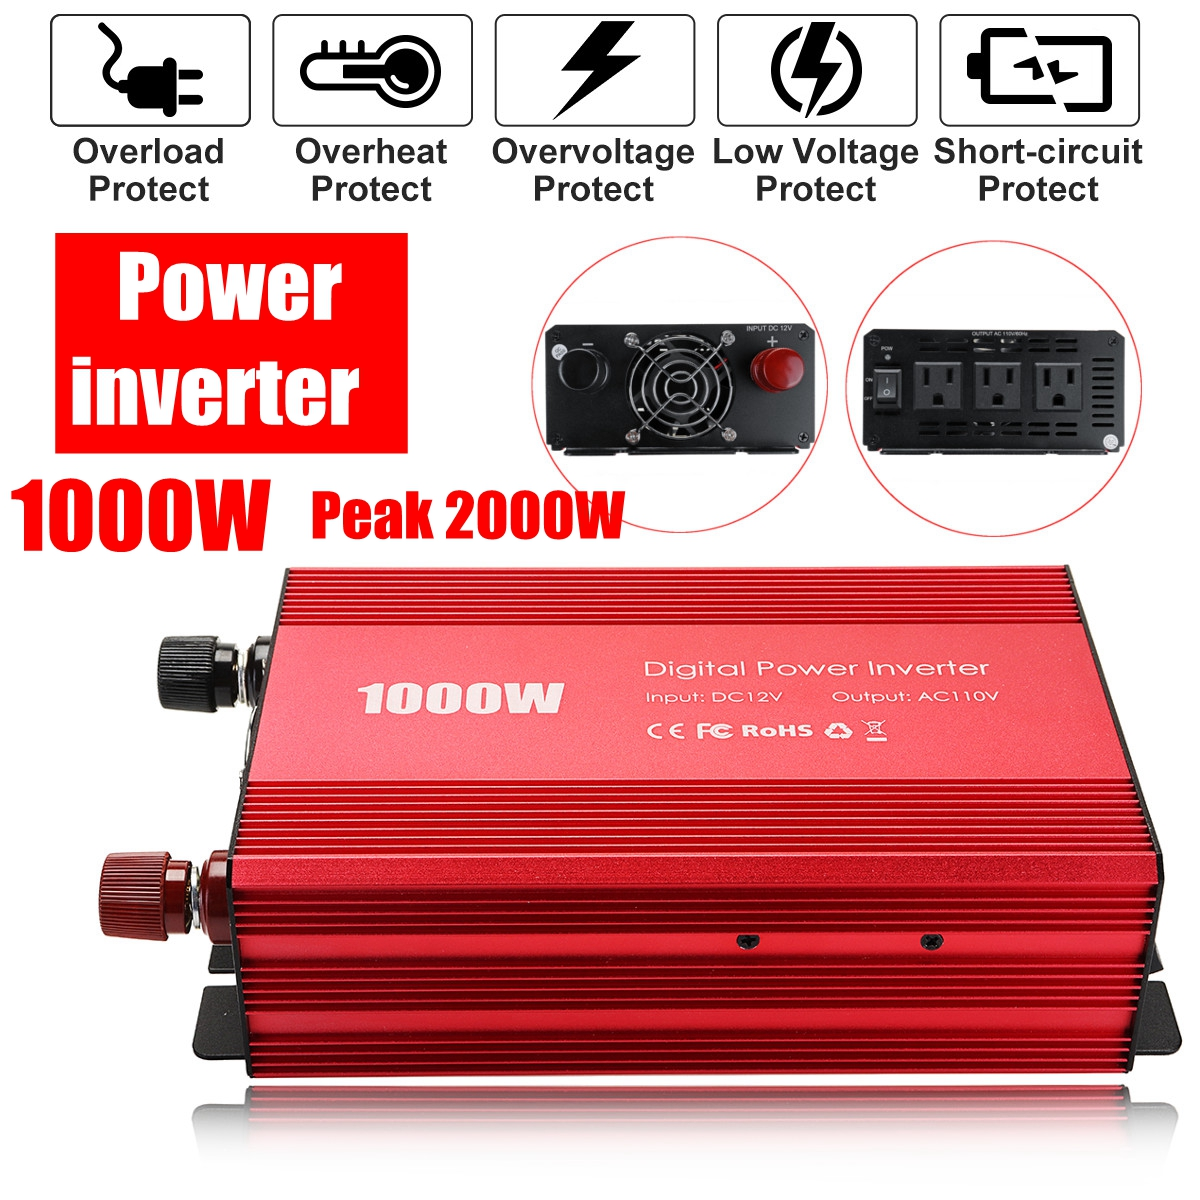 Inverter 12V to 110V 1000W 2000W Peaks Car Power Inverter Voltage Transformer Converter Charger Solar Inversor 12V 220V car inverter 12v 220v power inverters voltage transformer converter 12 220 1000w charger on display solar adapter 12v 220v dy104